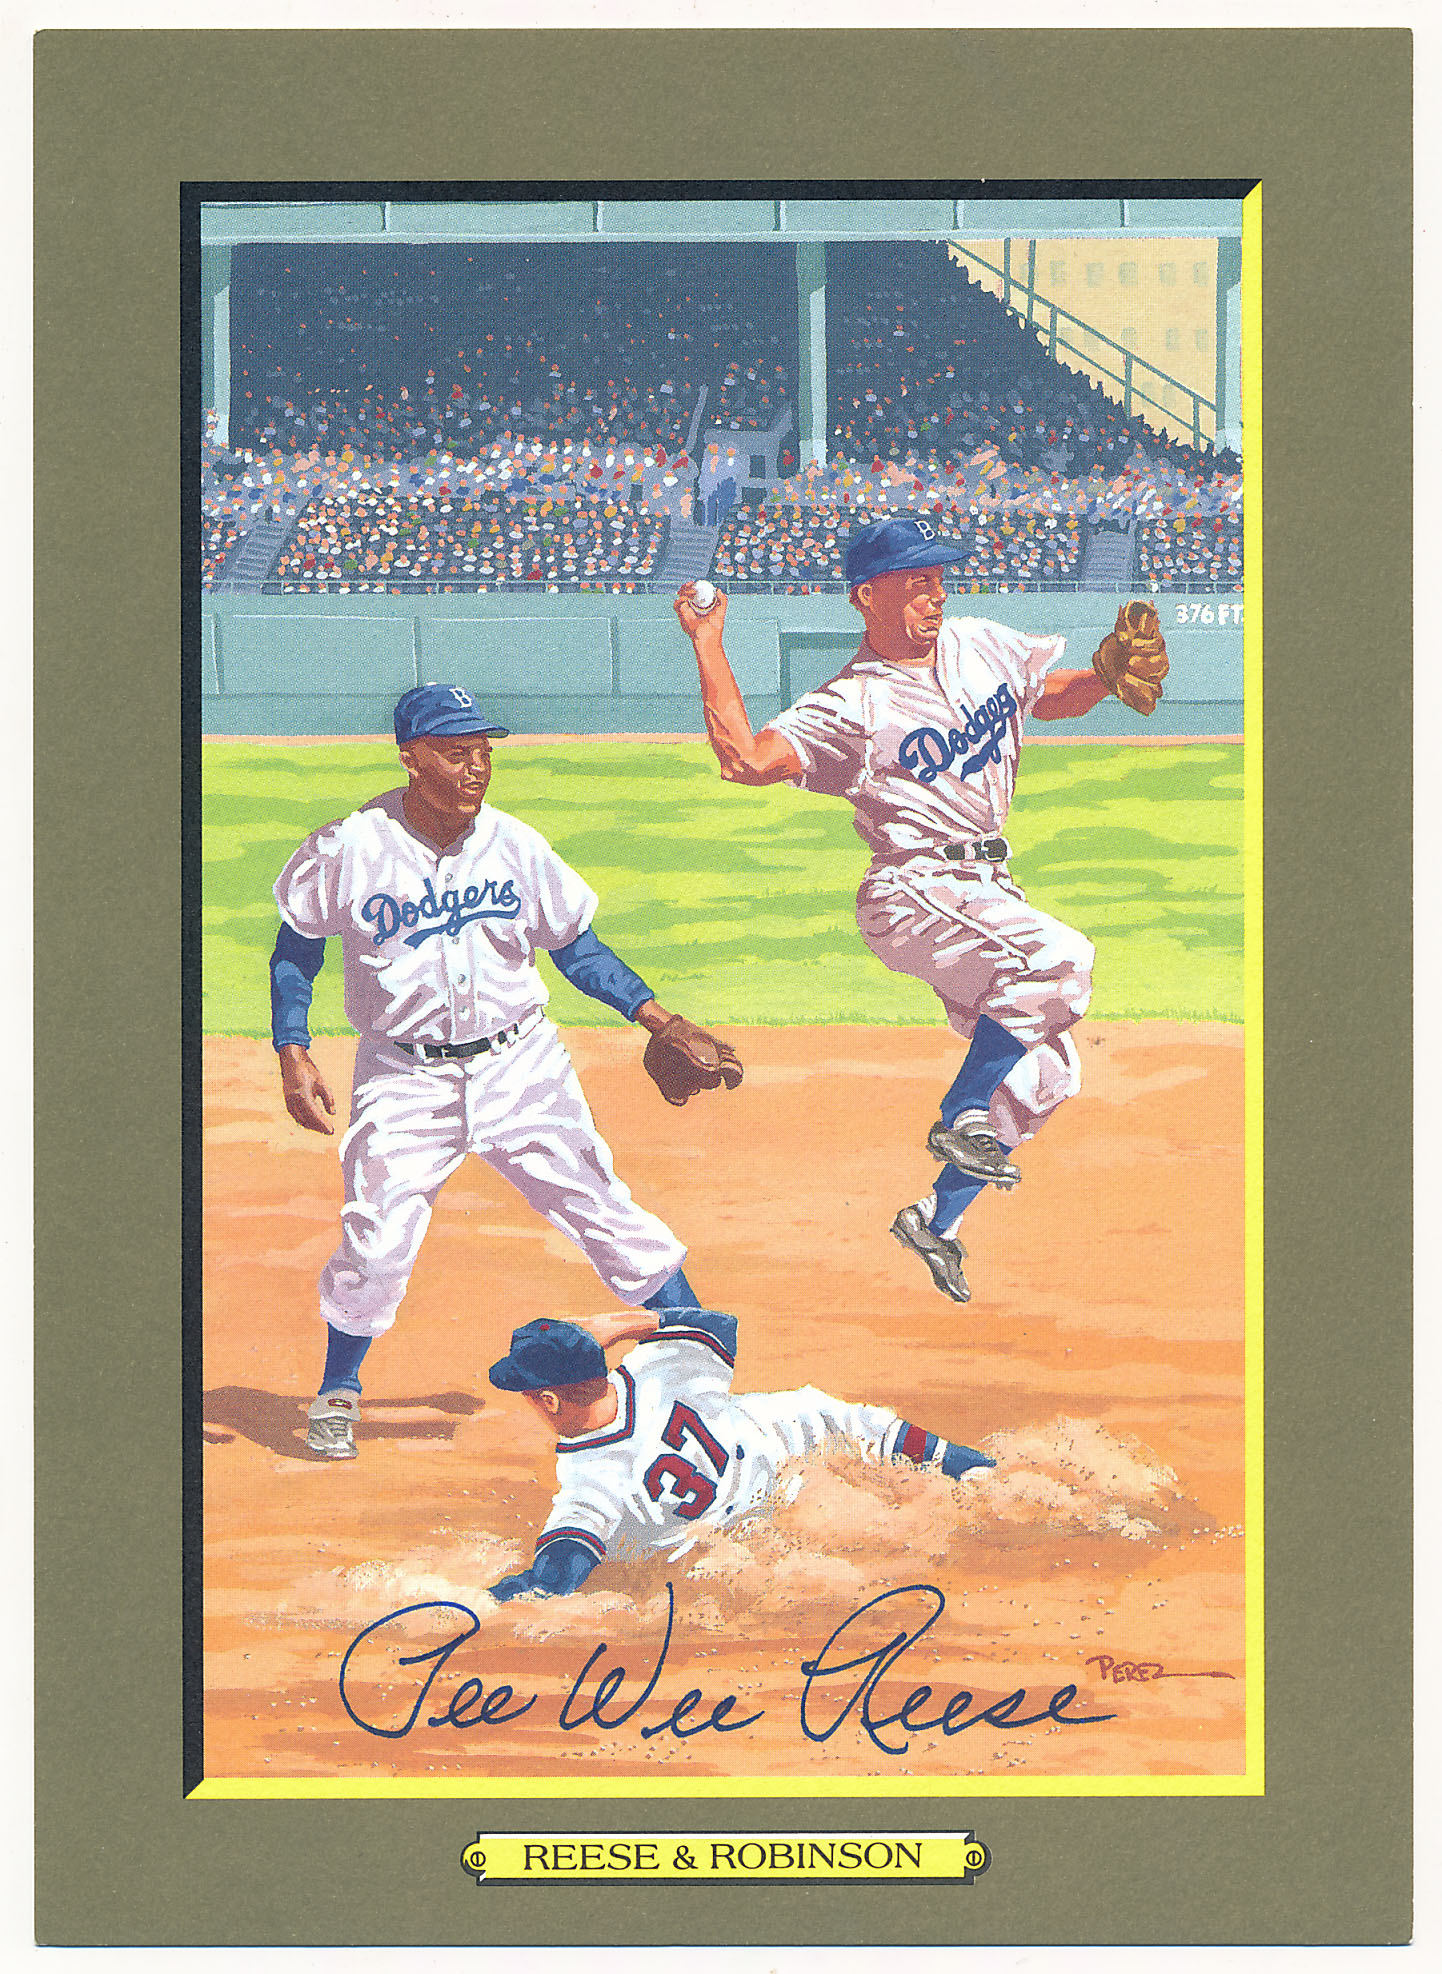 1985 Perez Steele Greatest Moments 91 Pee Wee Reese 9.5